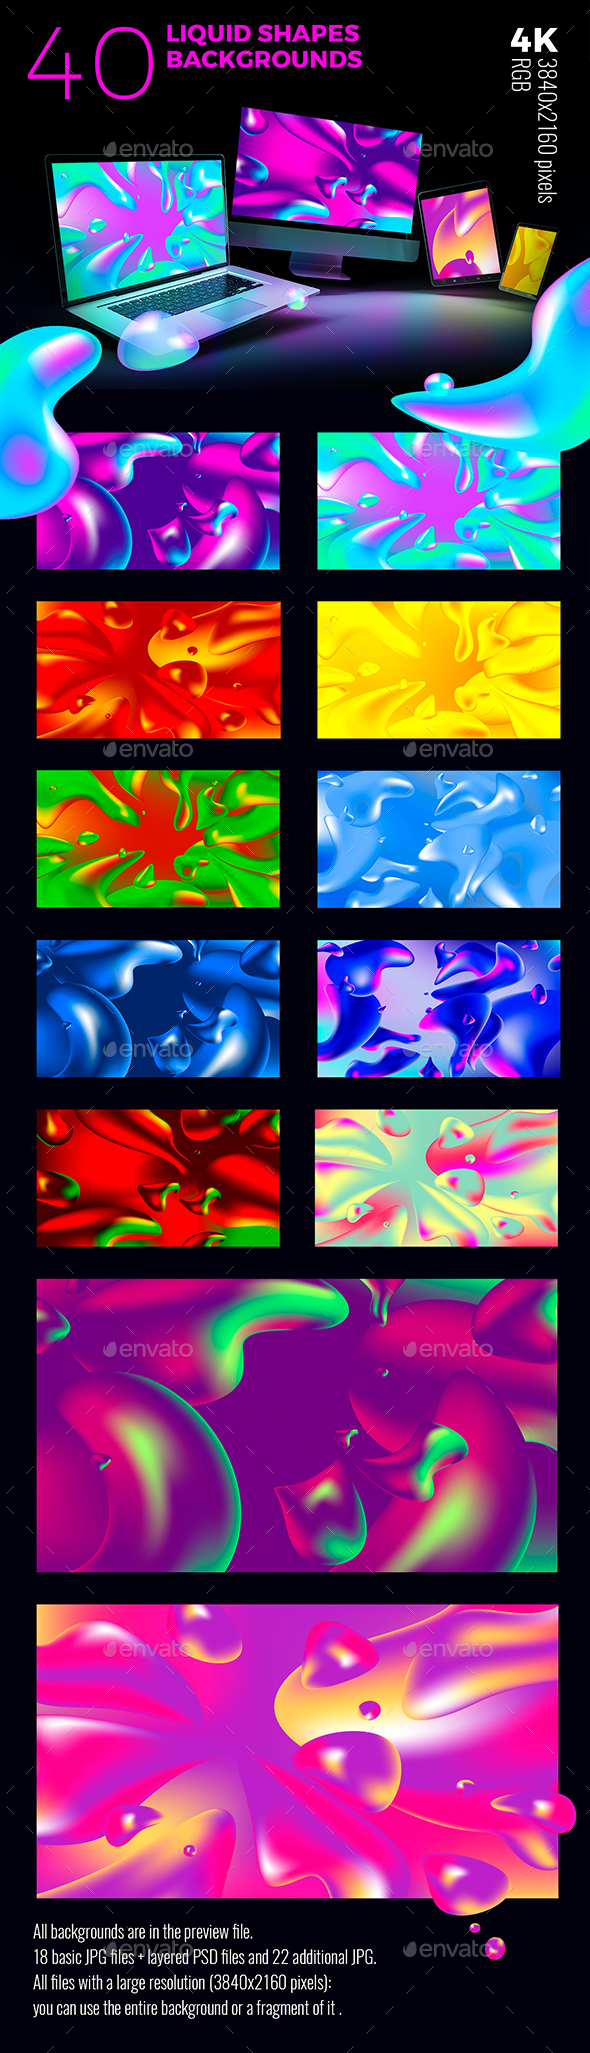 Big Set Liquid Shapes Backgrounds - Abstract Backgrounds